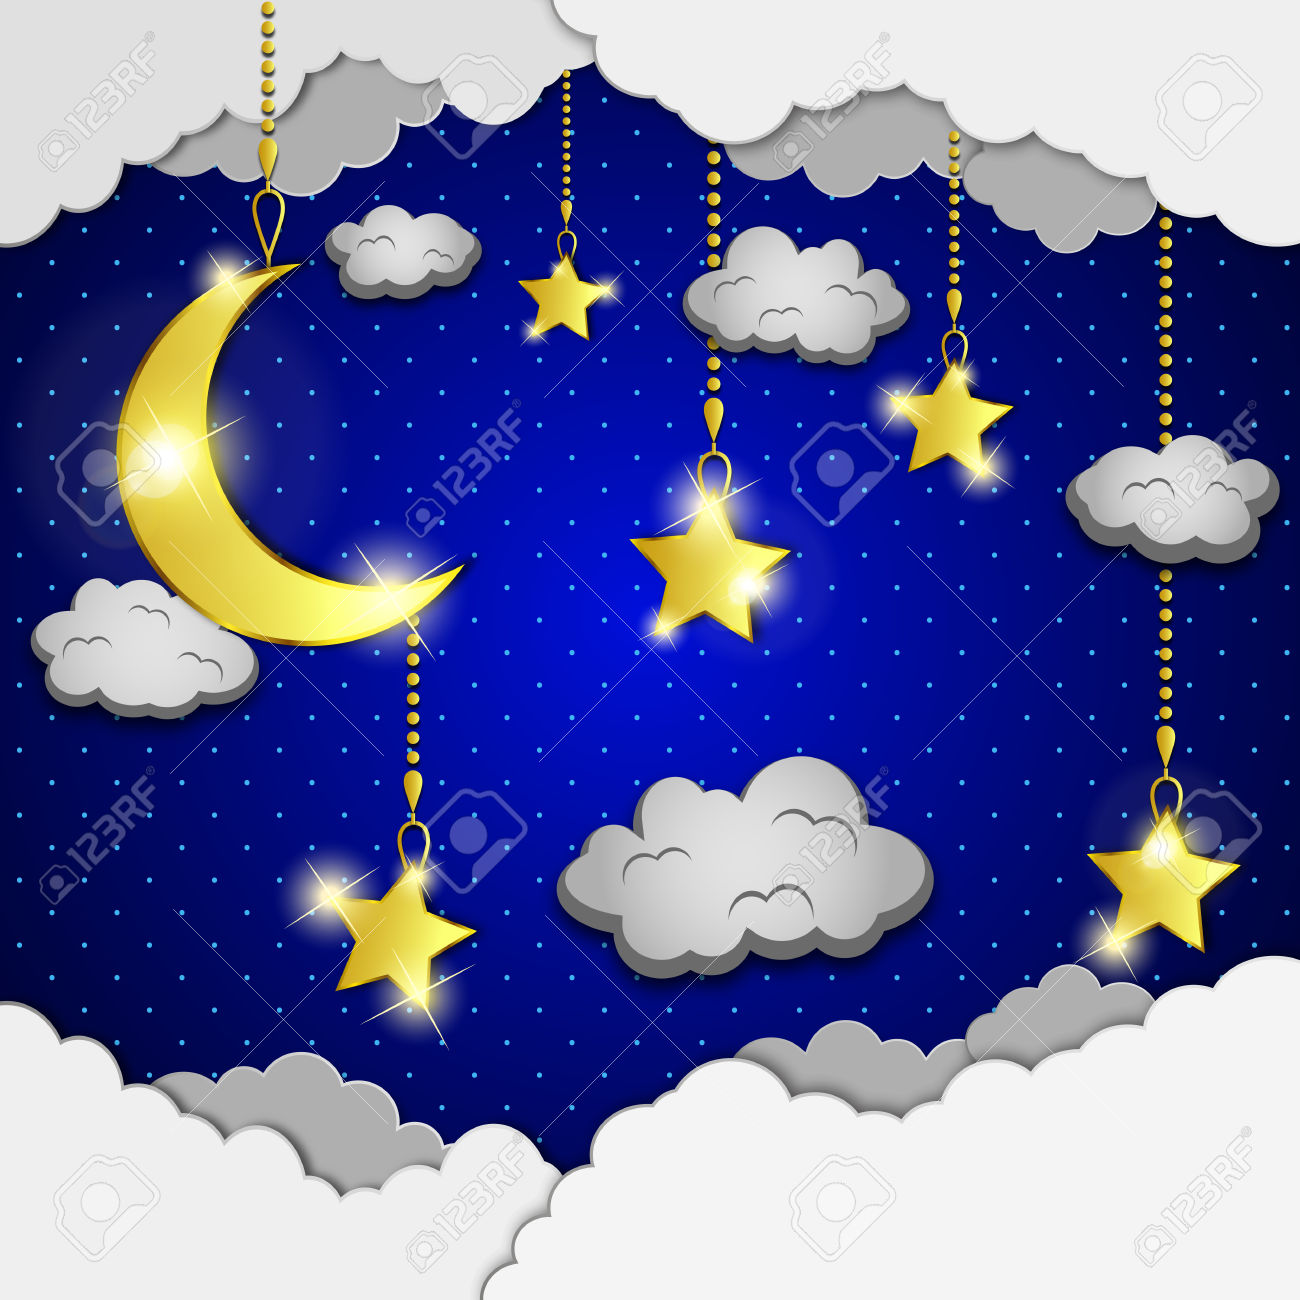 Background With Evening Sky. Moon And Stars In The Clouds. Royalty.